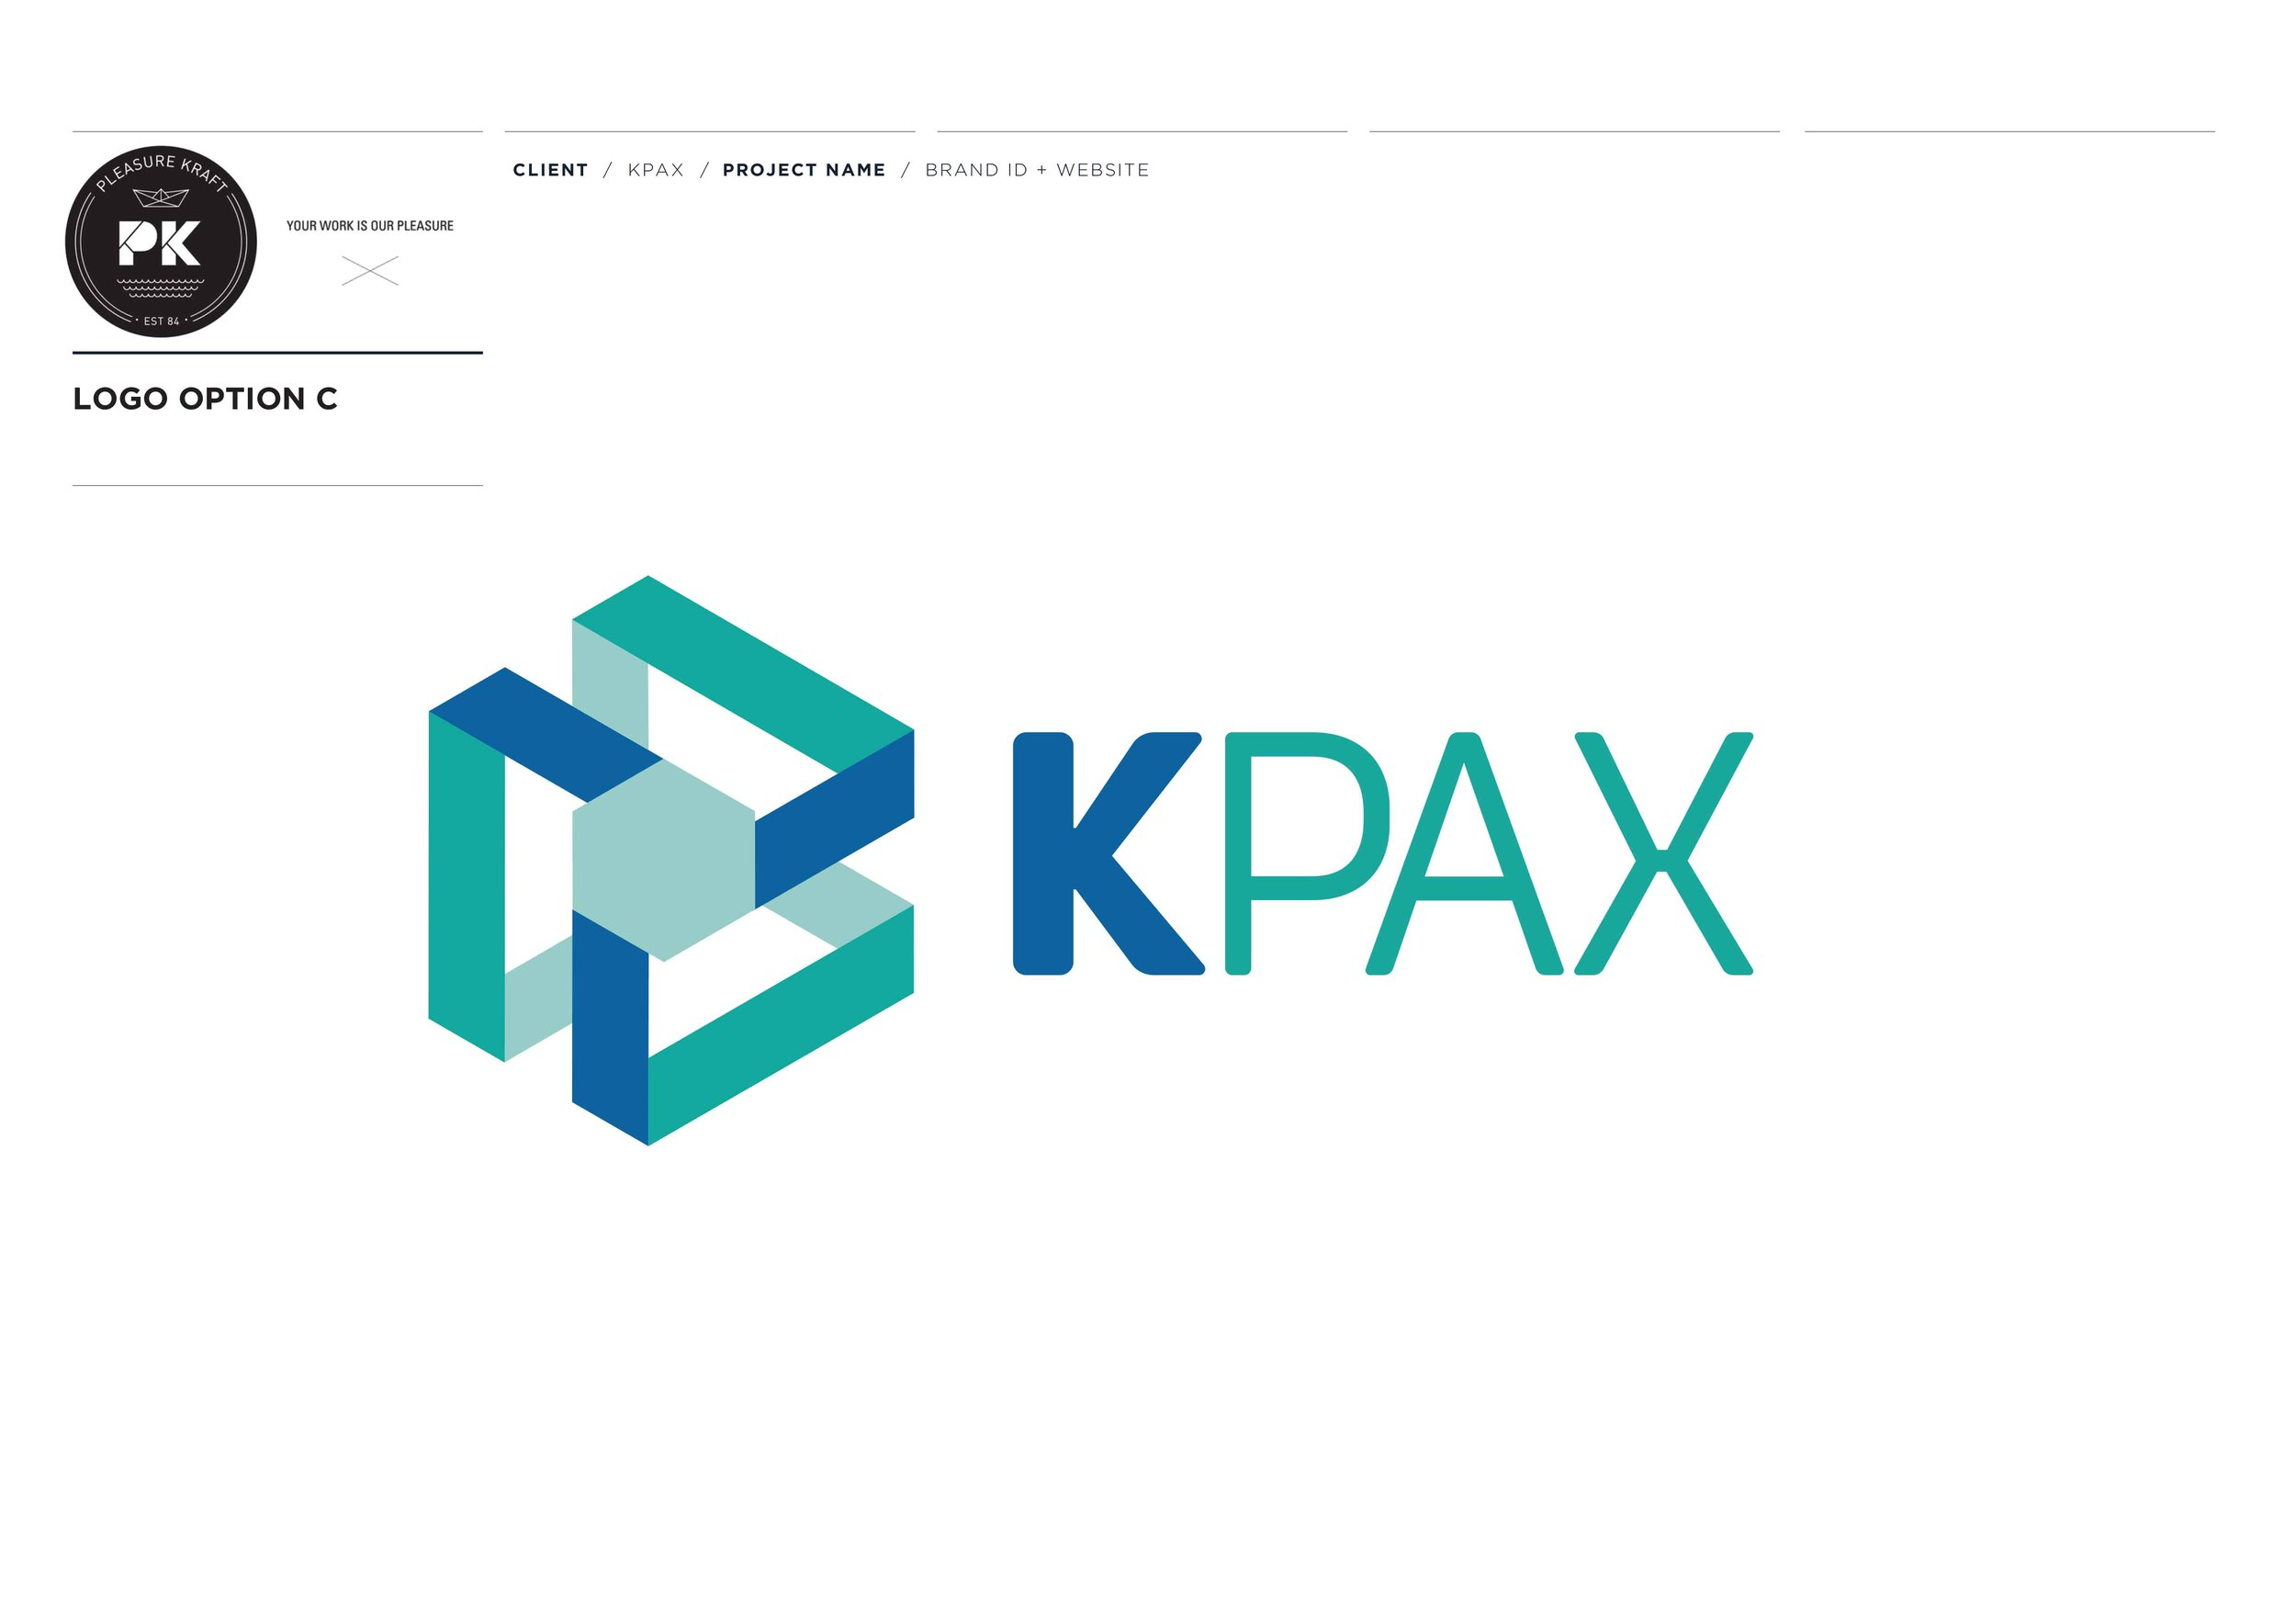 KPAX LOGO+GRAPHIC CONCEPTS PRES-8 copy.jpg